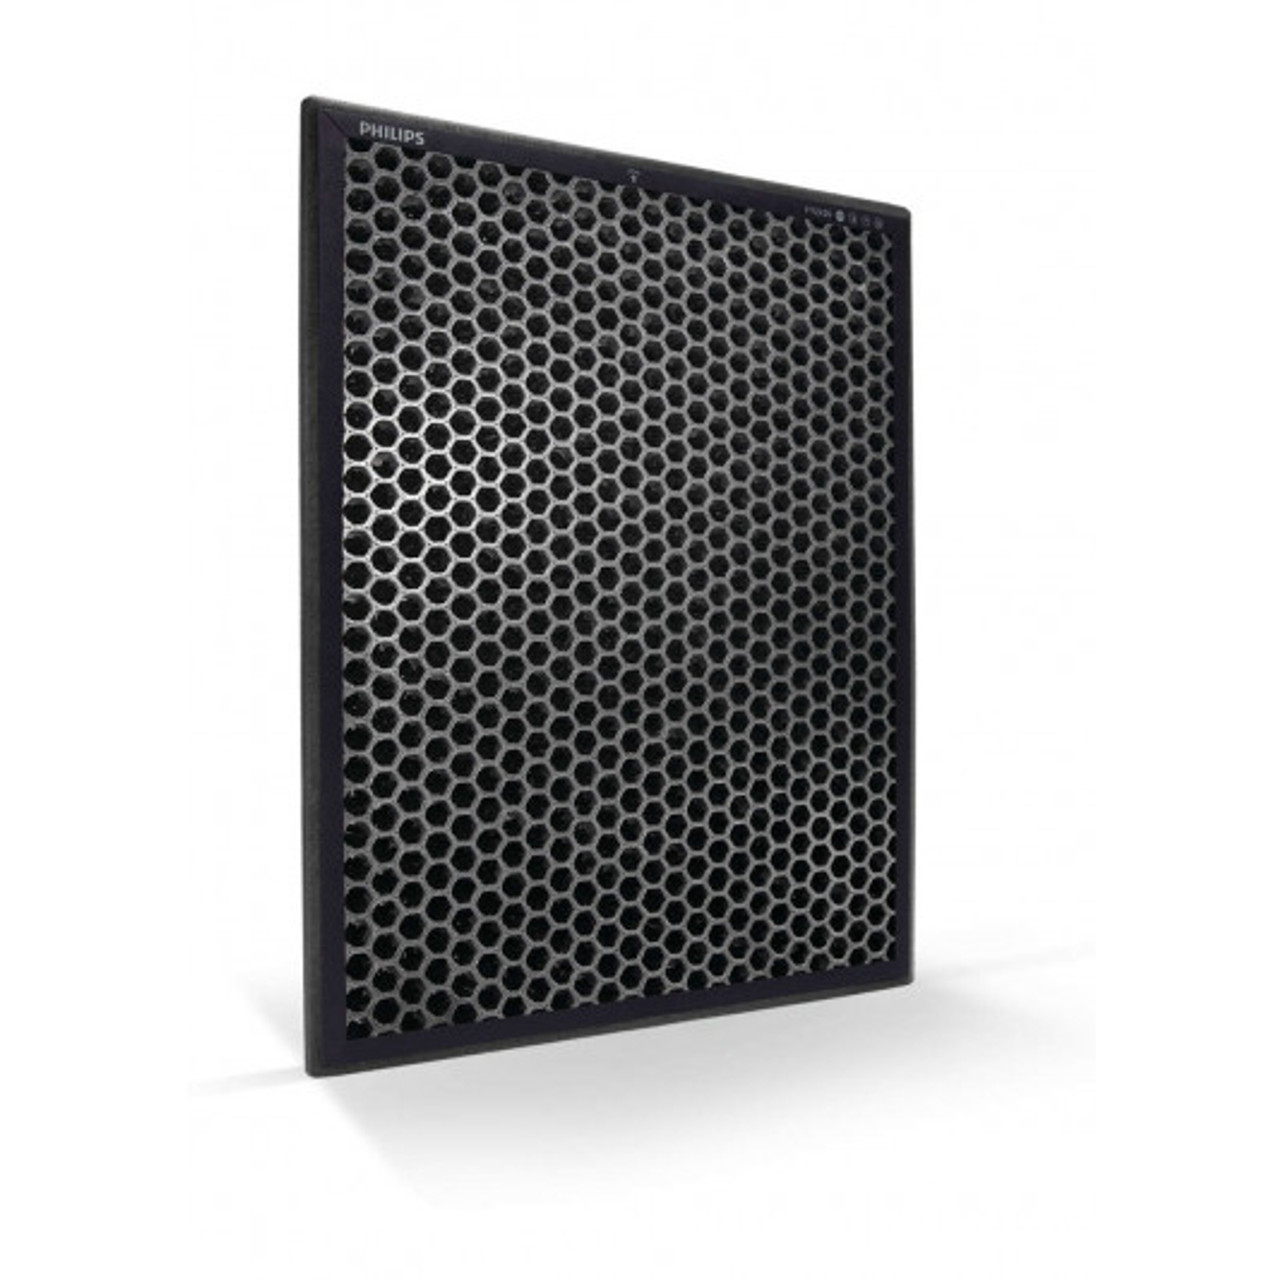 Philips FY1413/30 Nanoprotect Replacement Filter for Series 1000